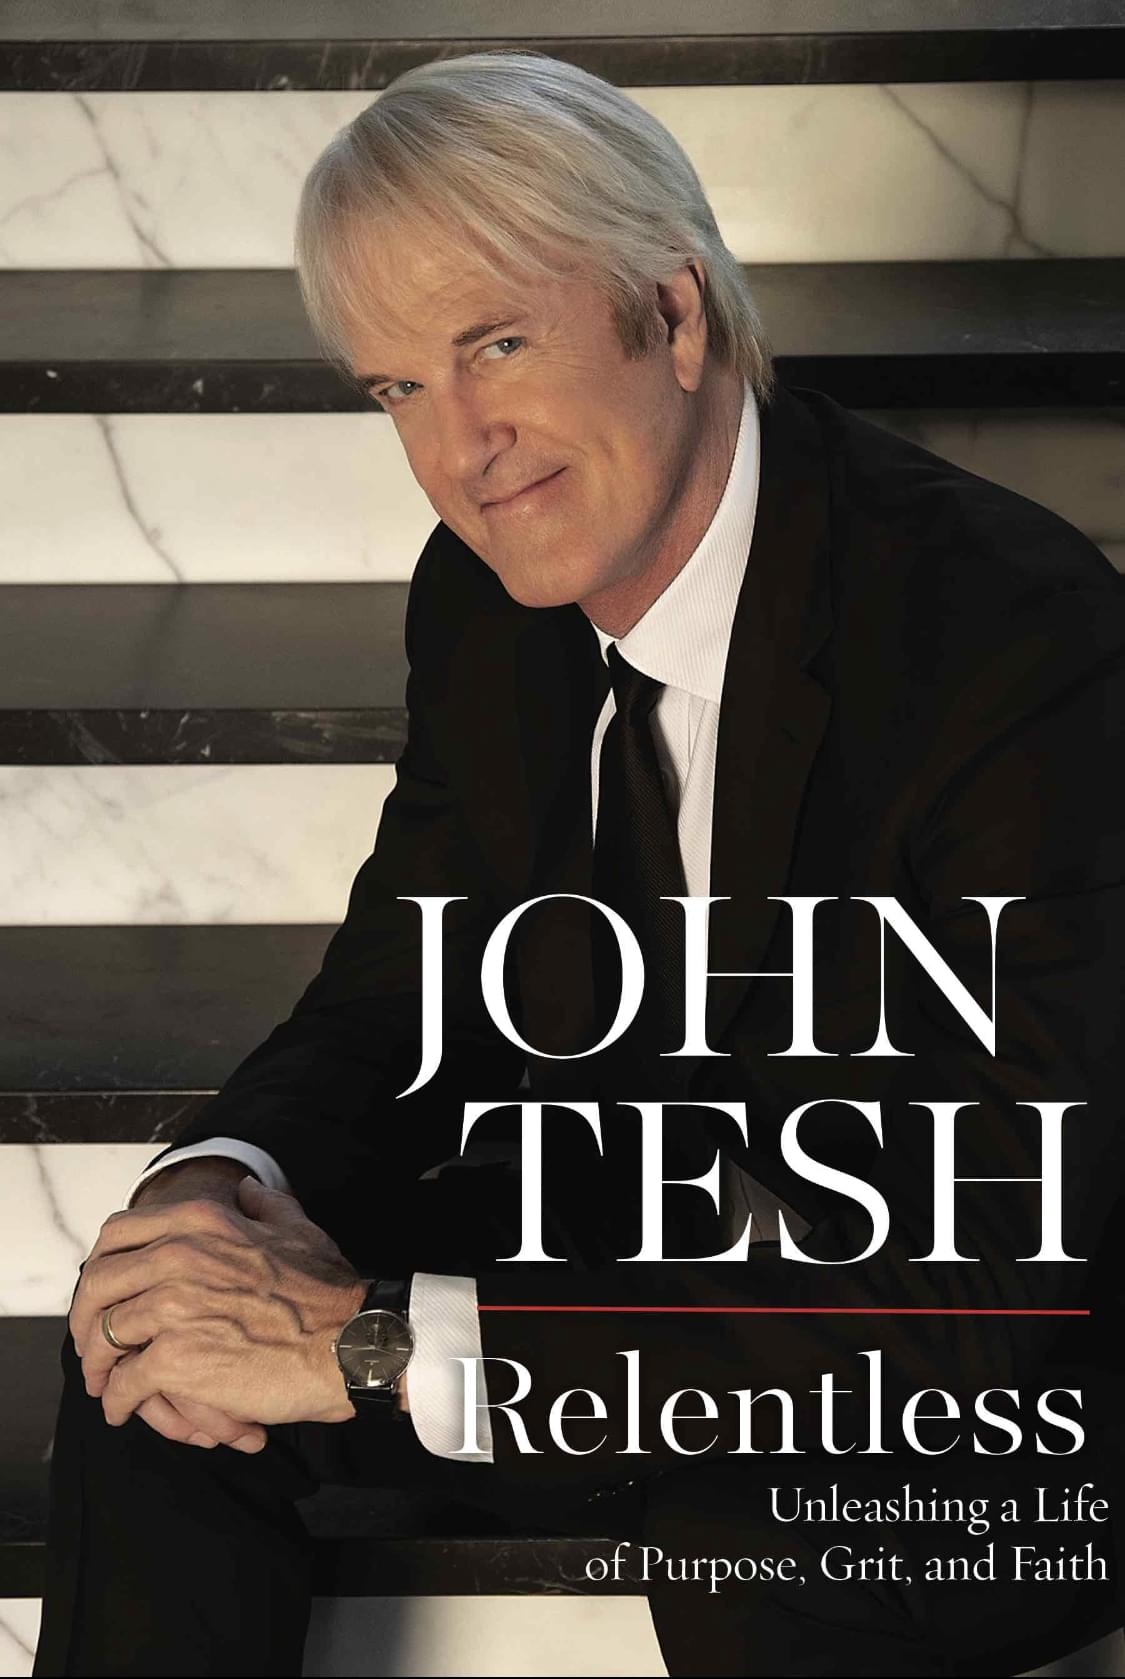 John Tesh Interview On His New Book